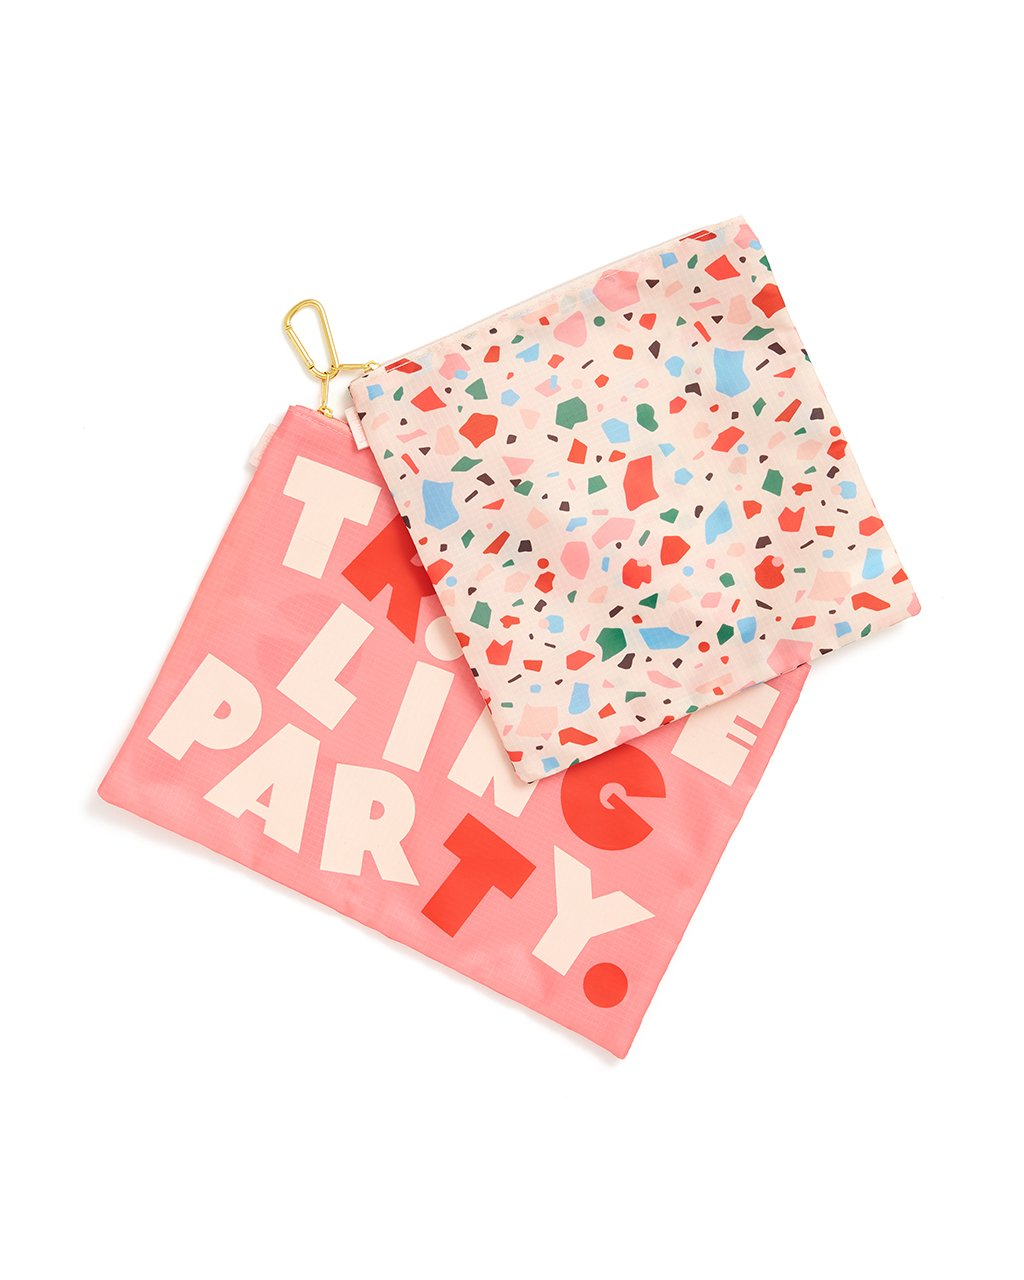 This Large Carryall Duo comes in a pink with 'Traveling Party' printed on the front and rainbow confetti design.